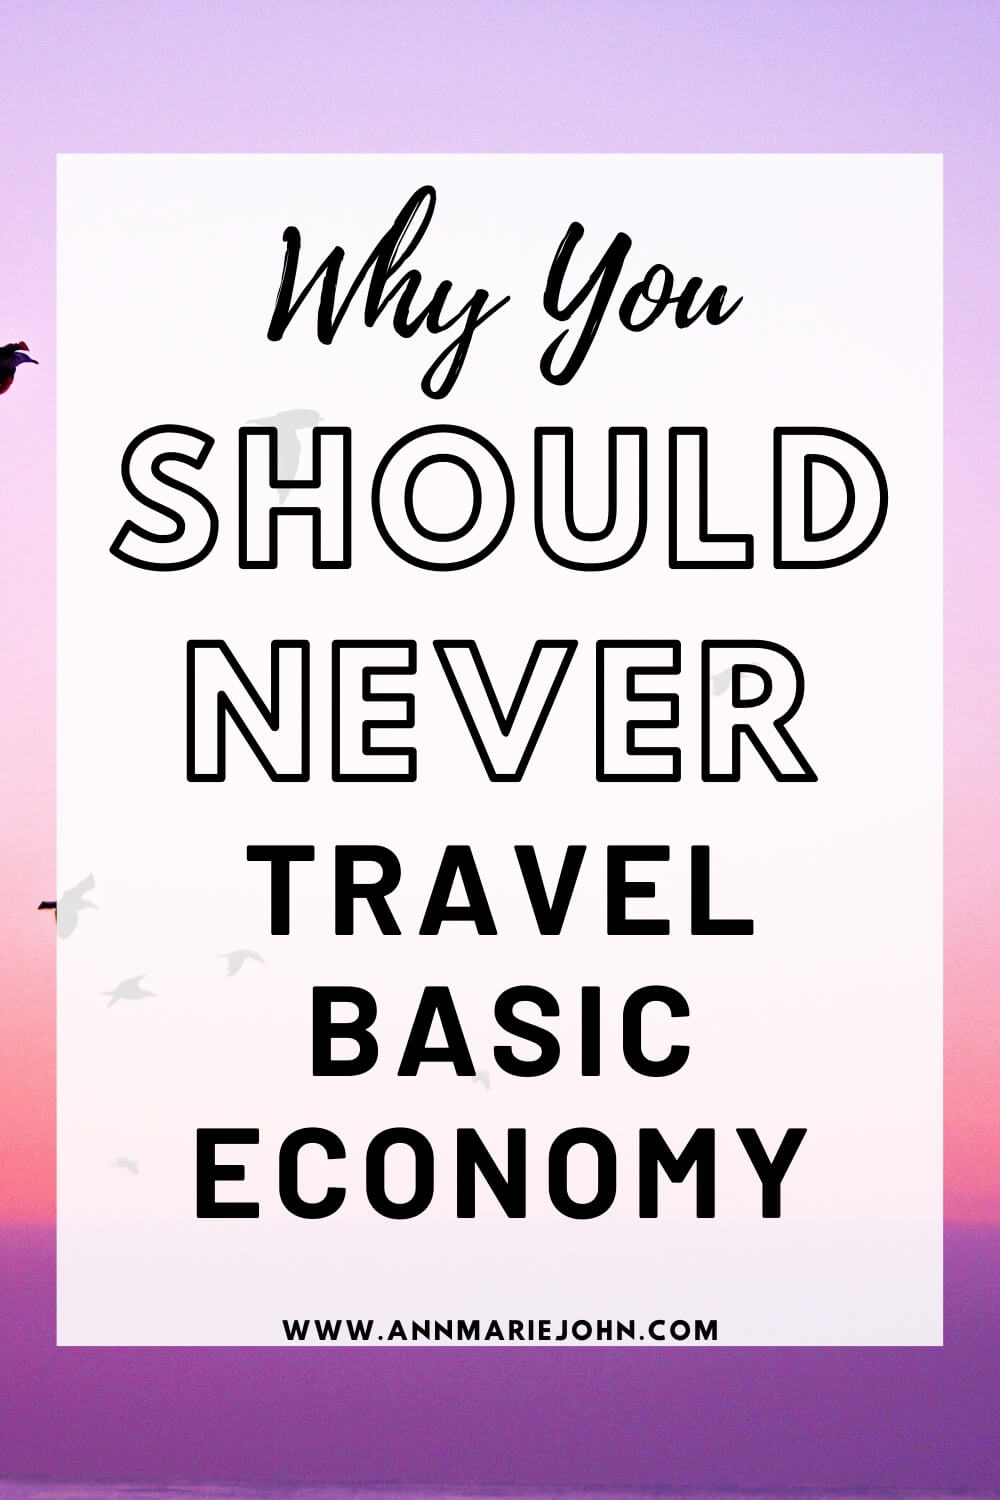 Why You Should Never Travel Basic Economy